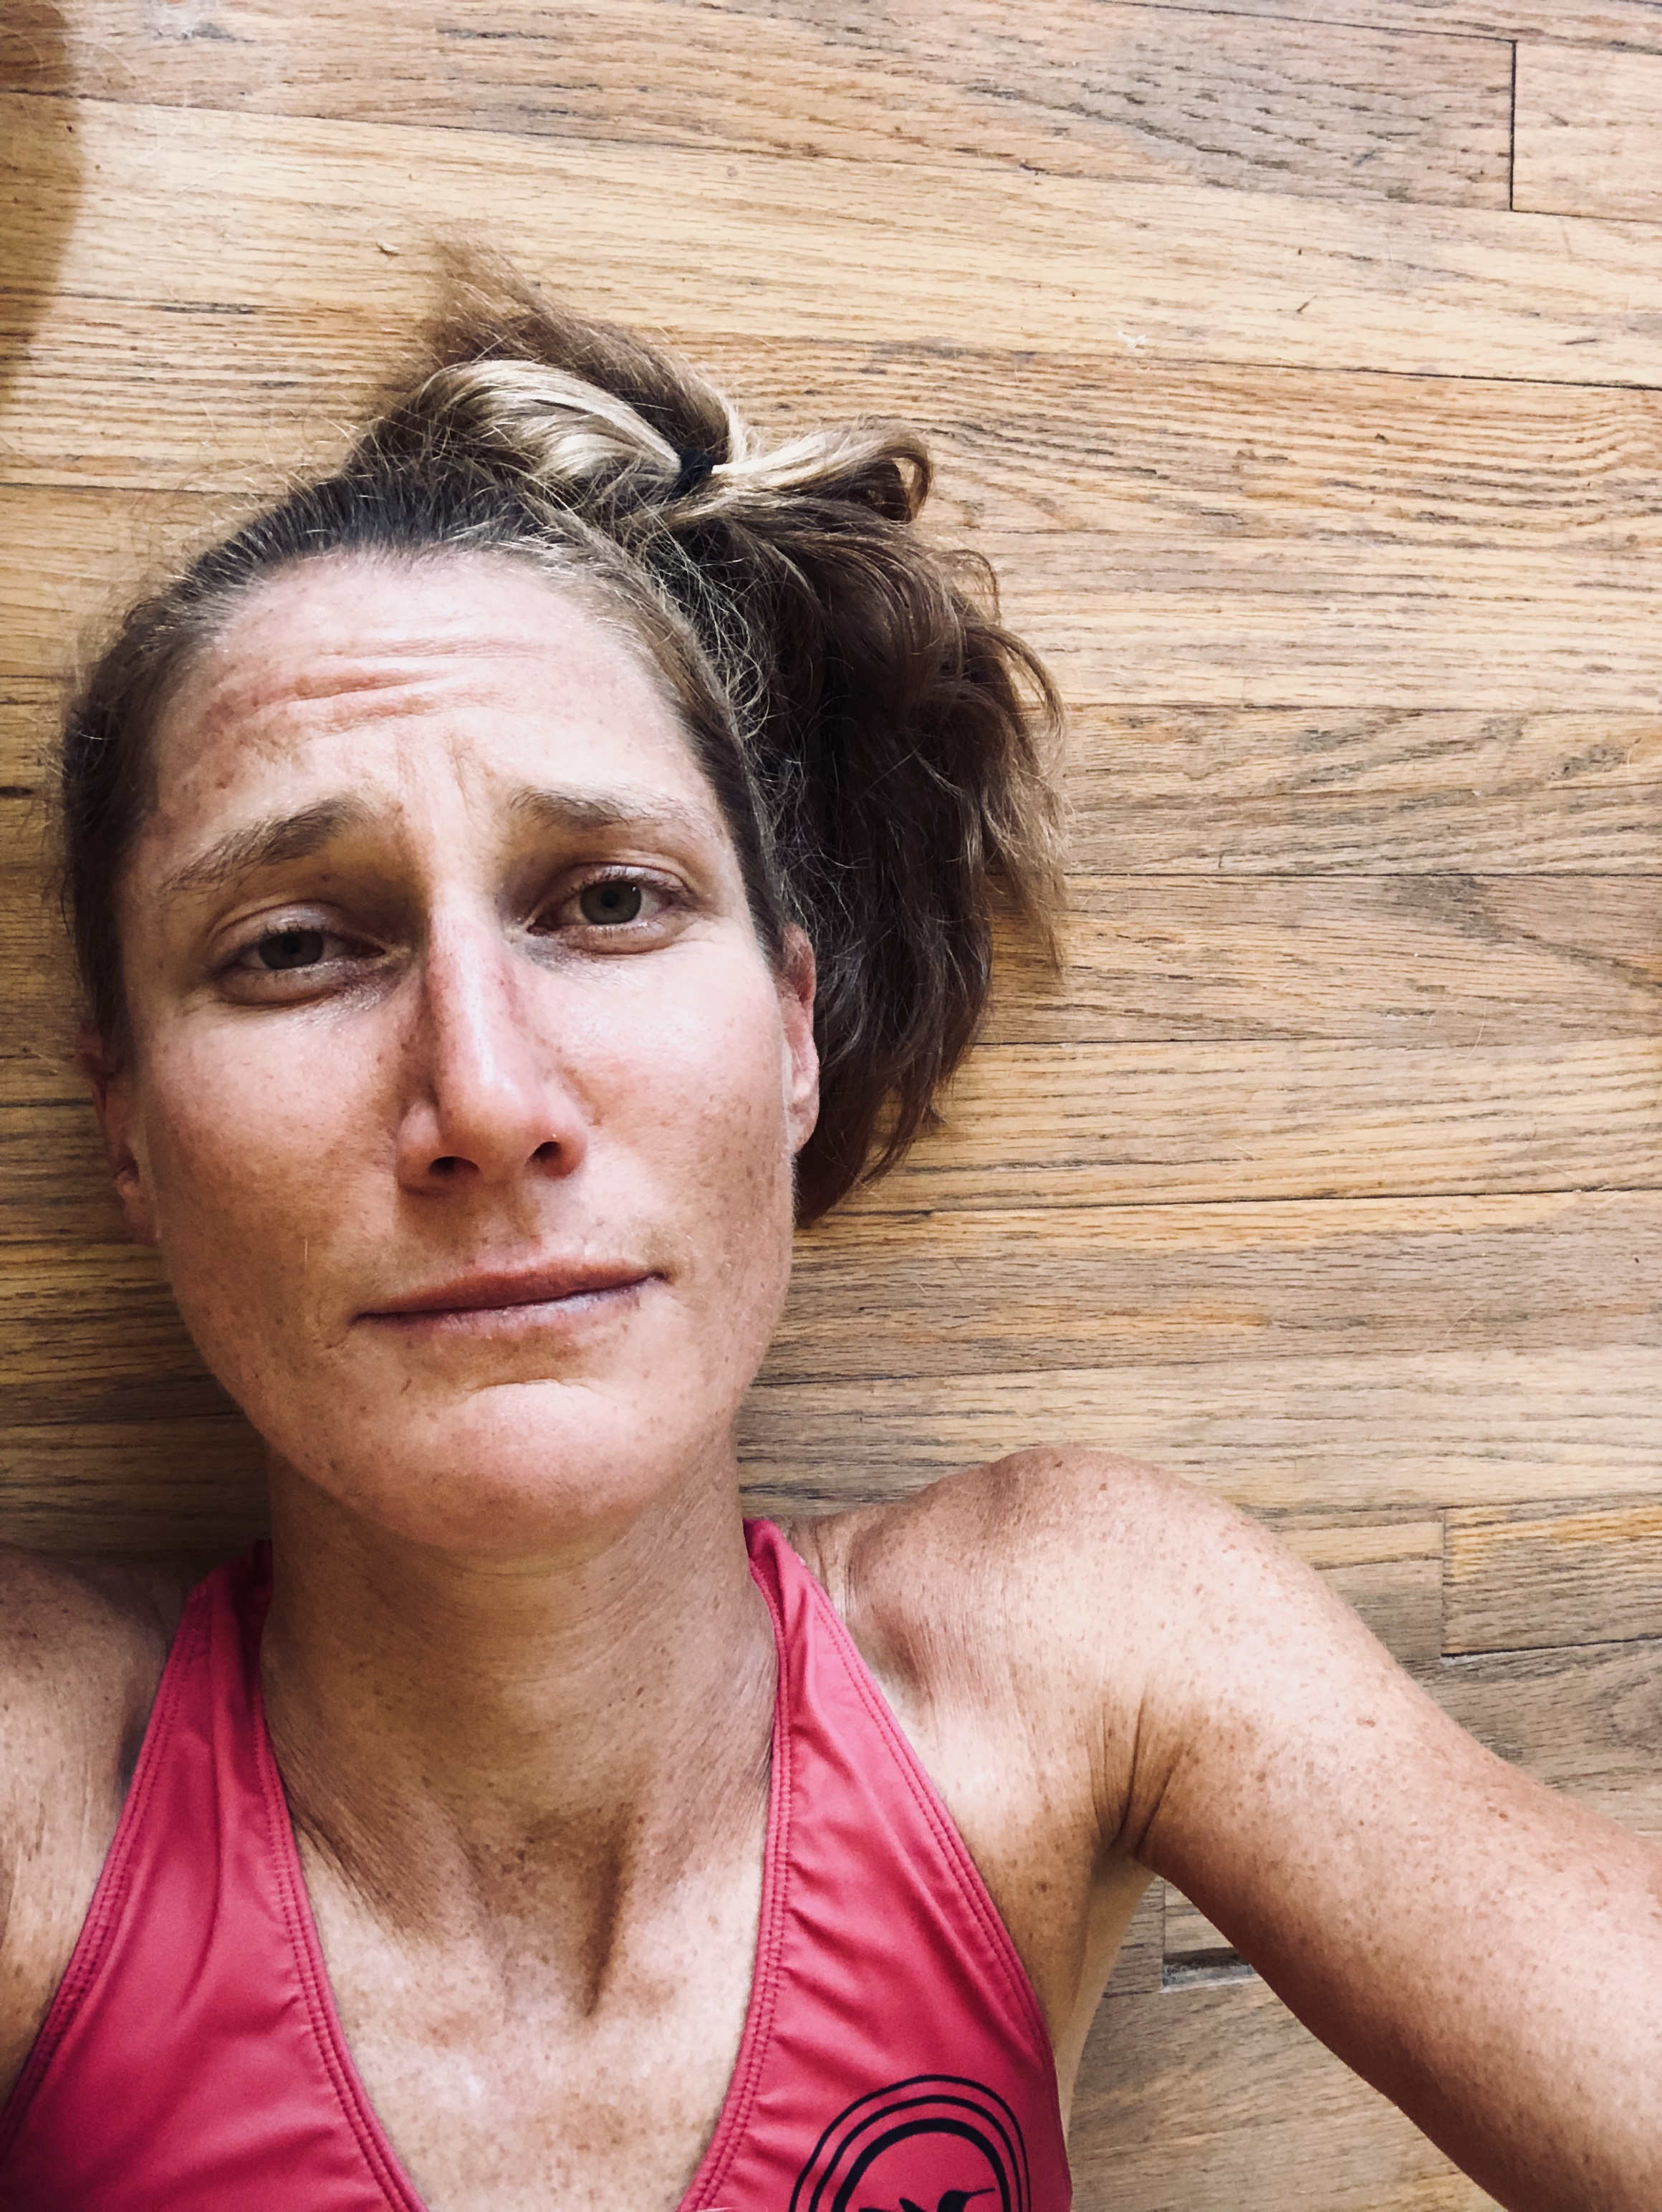 Moments after the worst run of my life, one week before running the NYC marathon, October, 2019.